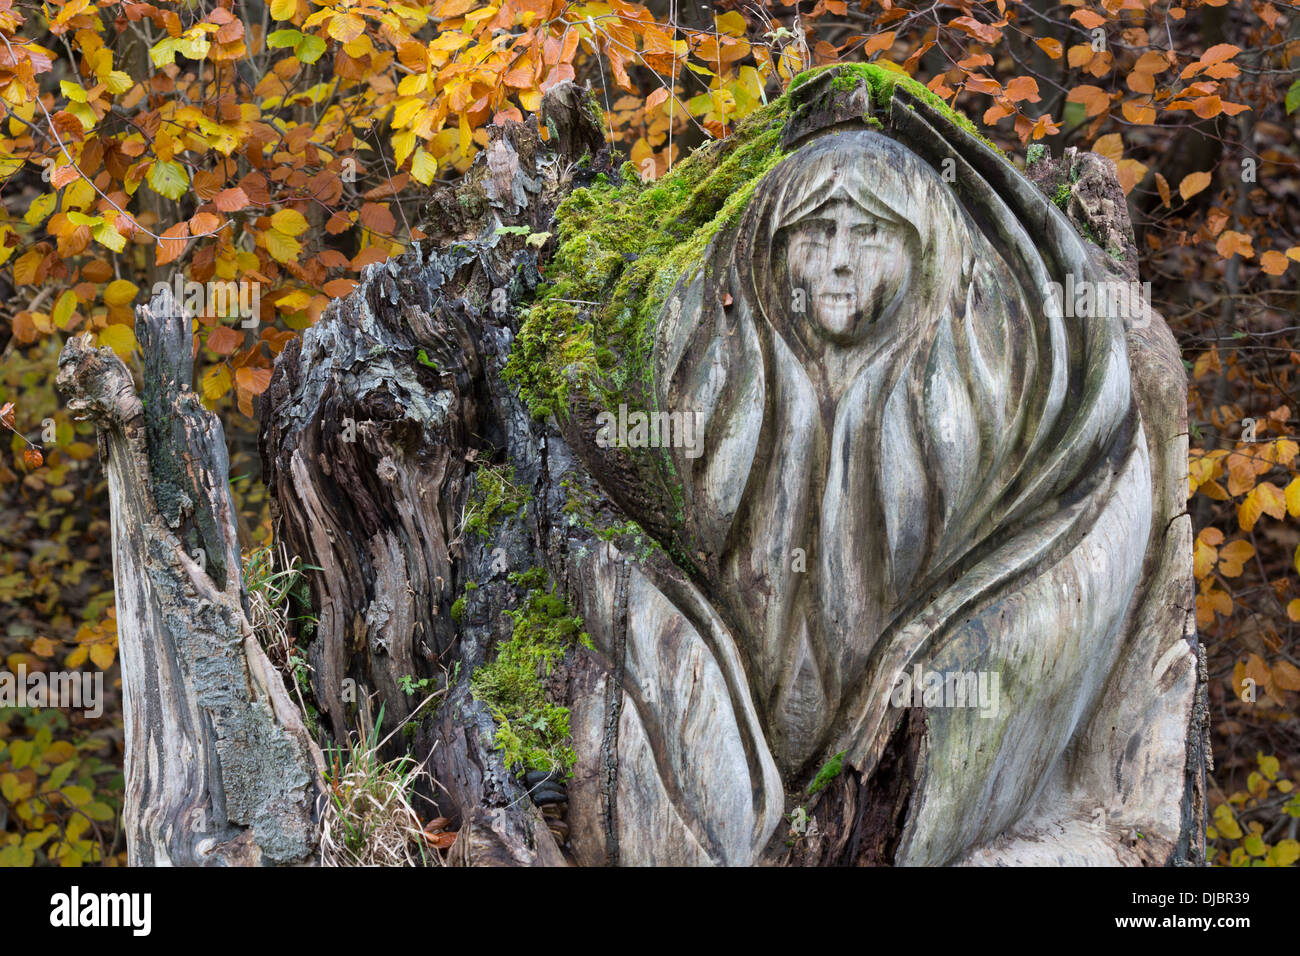 Carved tree stump at Tideswell Dale, Peak Distict, Derbyshire - Stock Image